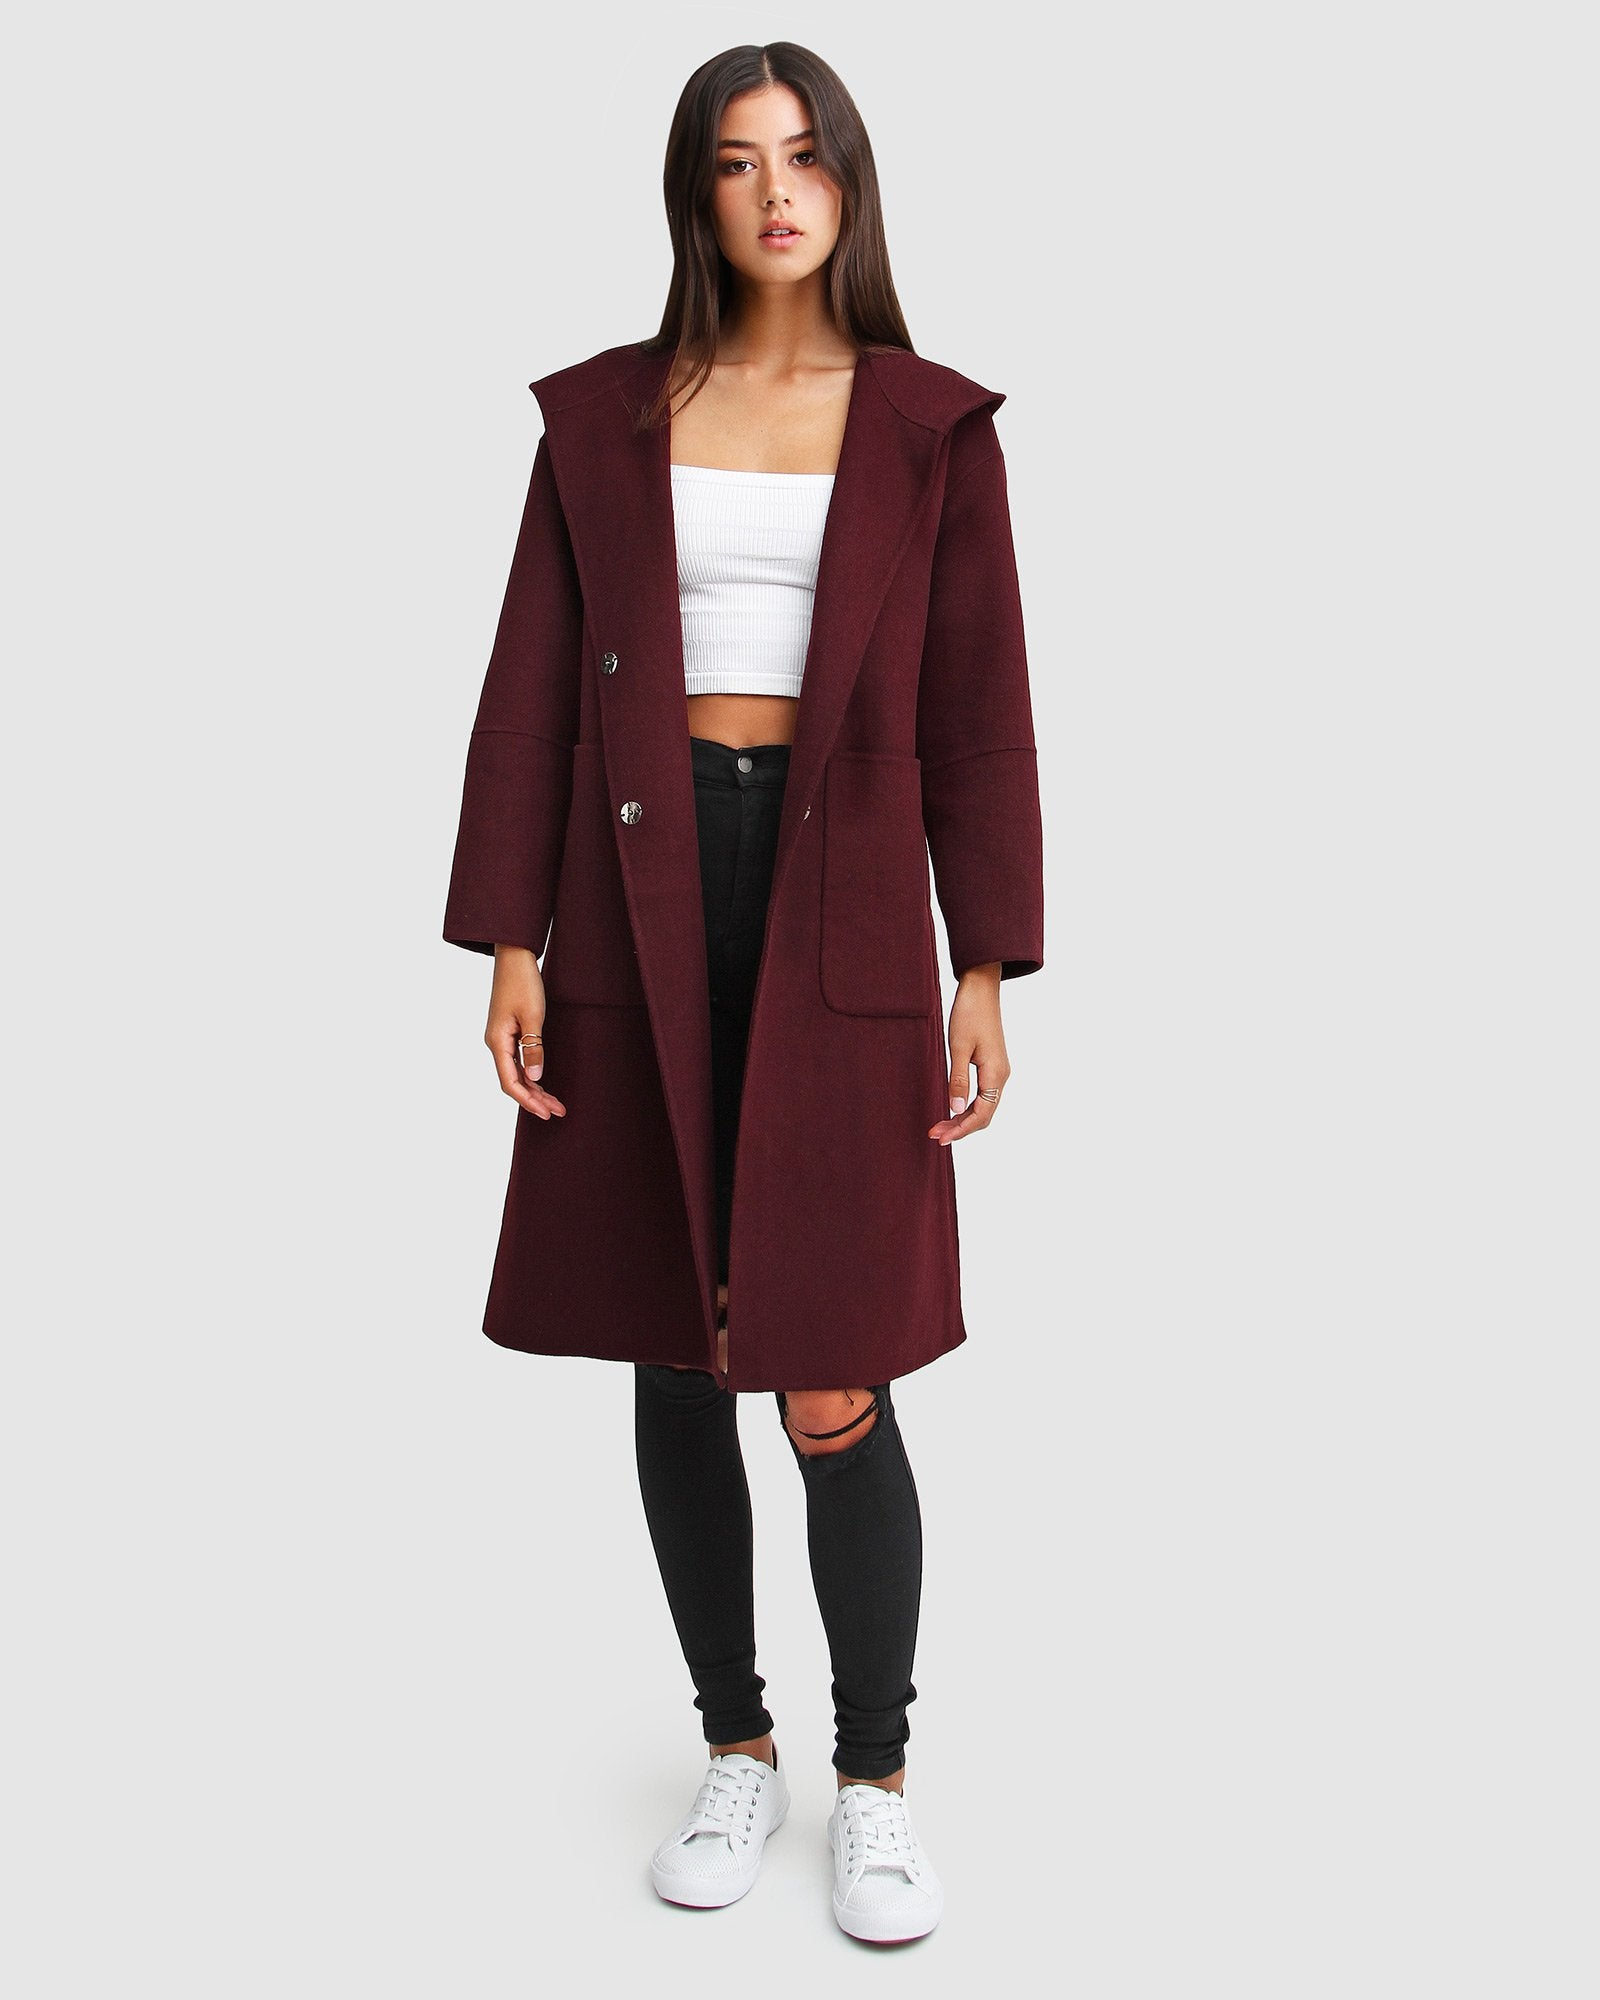 Walk This Way Wool Blend Oversized Coat  - Aubergine